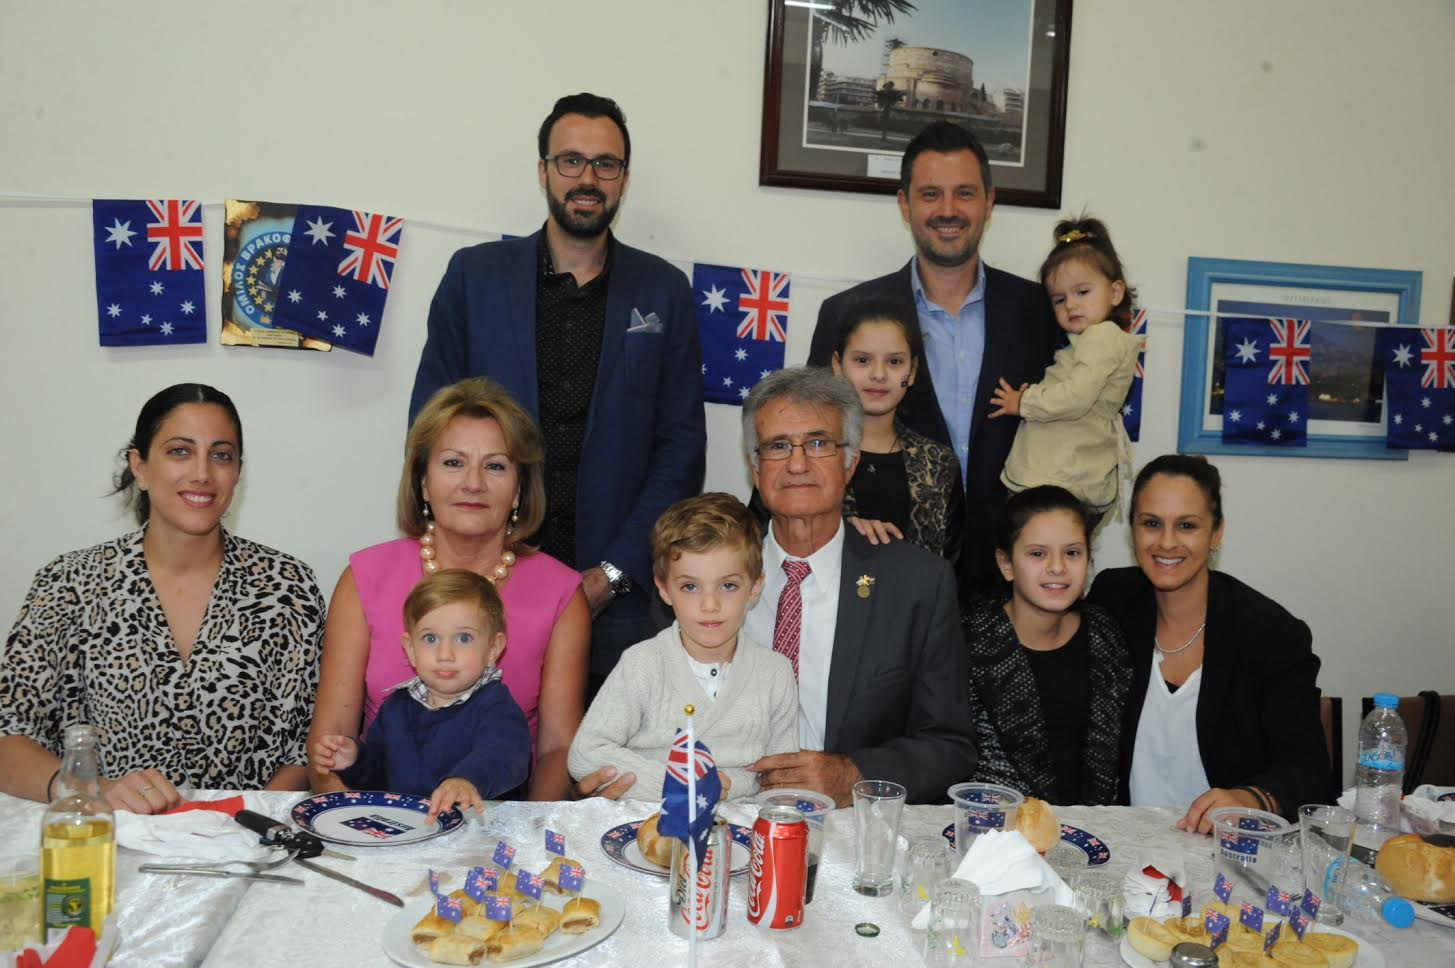 Mr & Mrs Mavroudis family with their two sons, their daughters-in-law and grandchildren